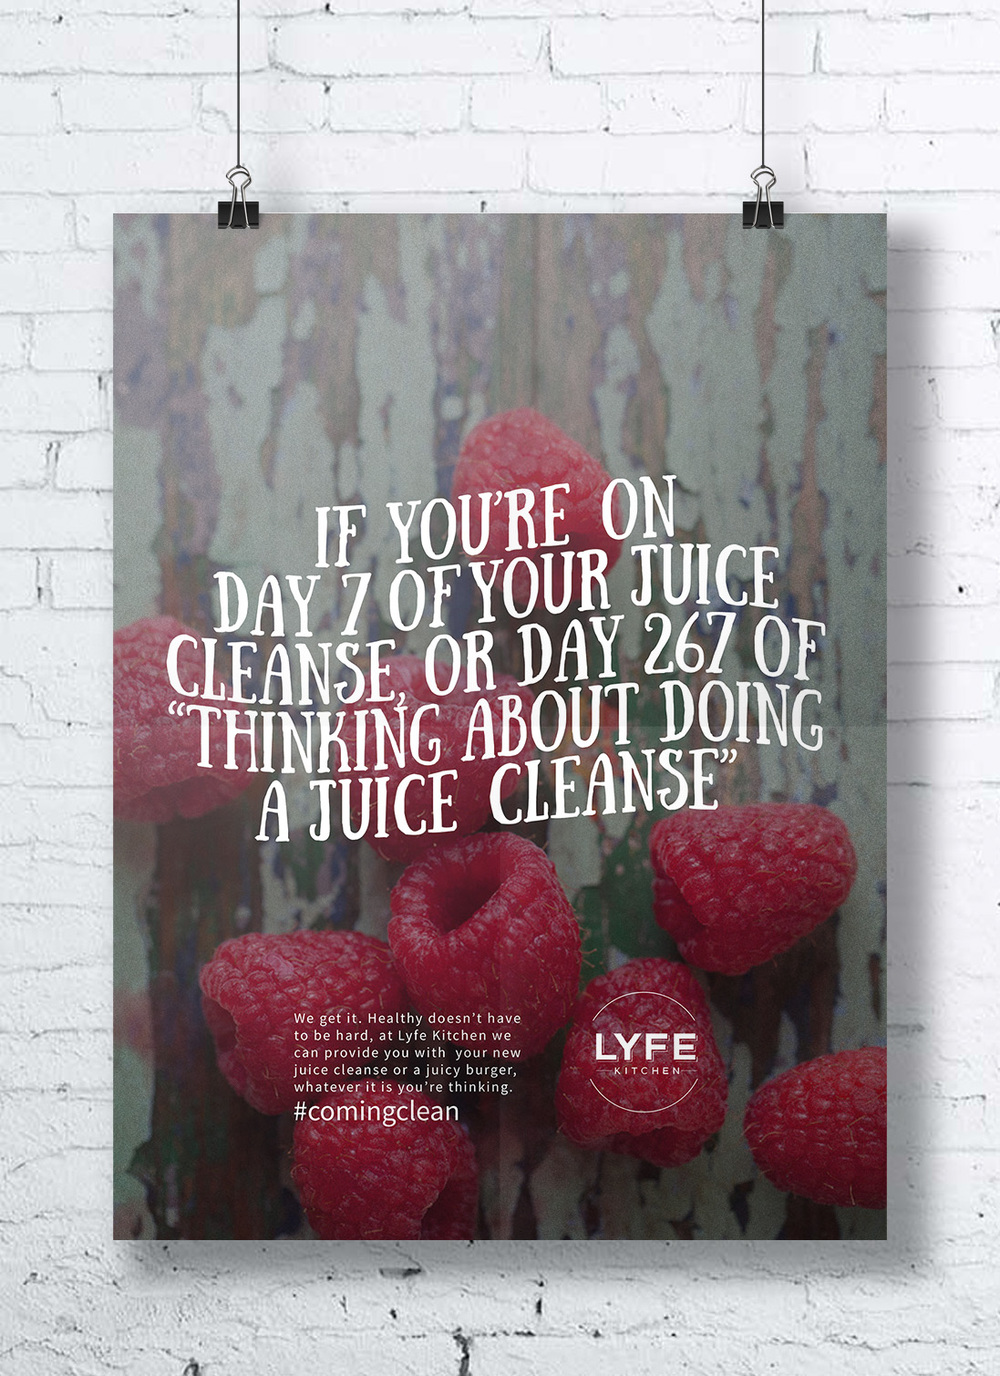 For New Brand Launch, Lyfe Kitchen. Elements Include: In Store Posters,  Guerilla Advertising, Logo Redesign, Packaging Redesign, Food Truck Concept.